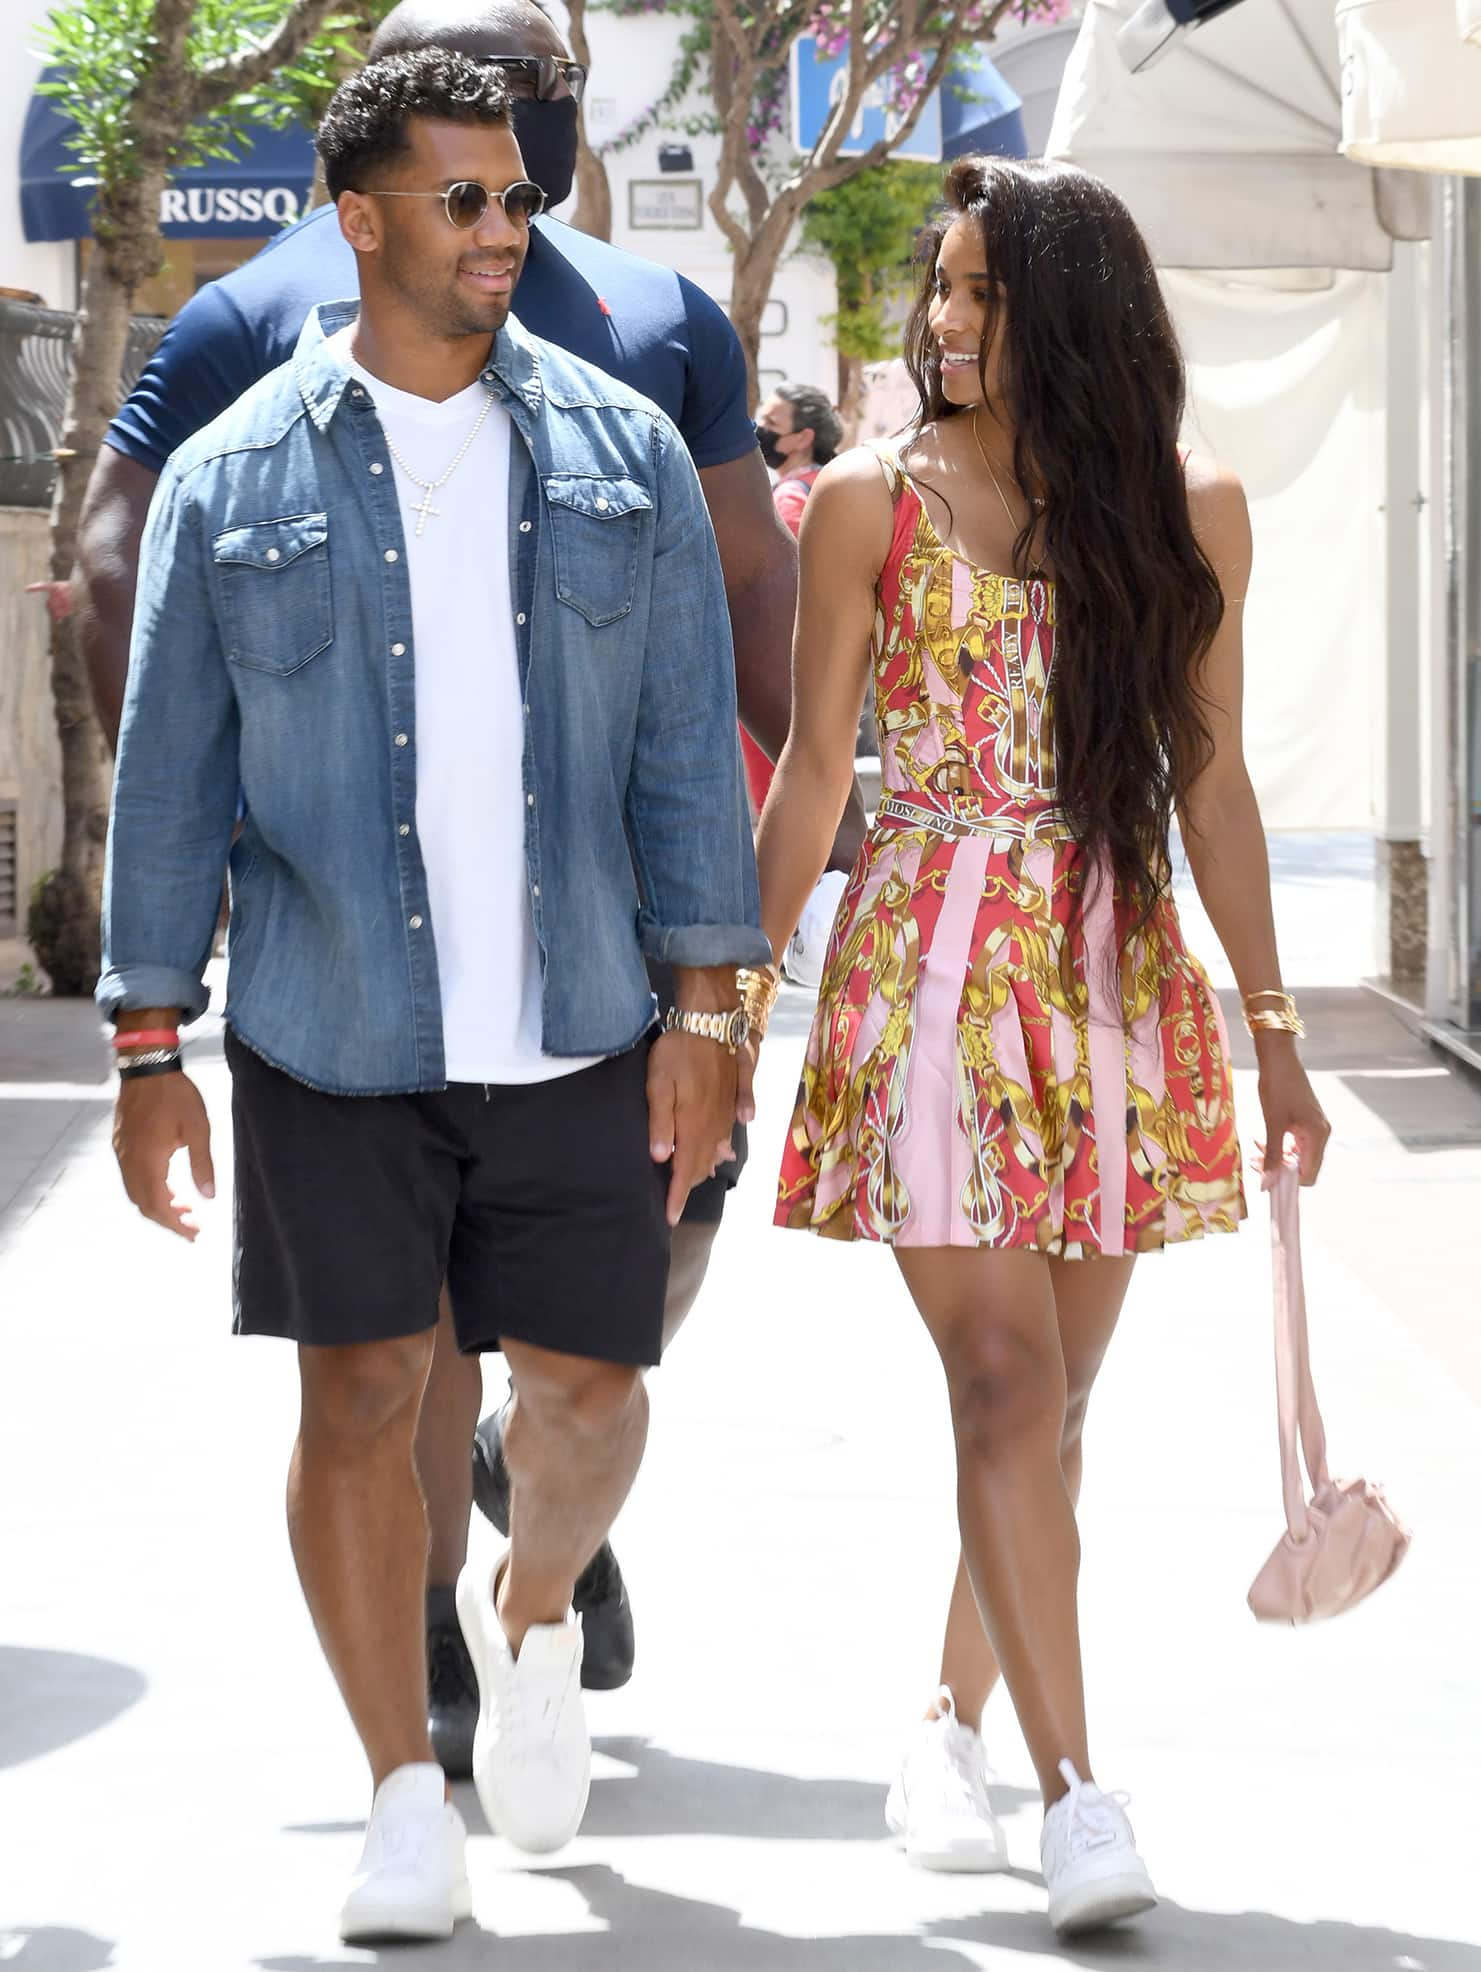 Russell Wilson is fresh in his white tee and shorts combo with a button-down denim shirt